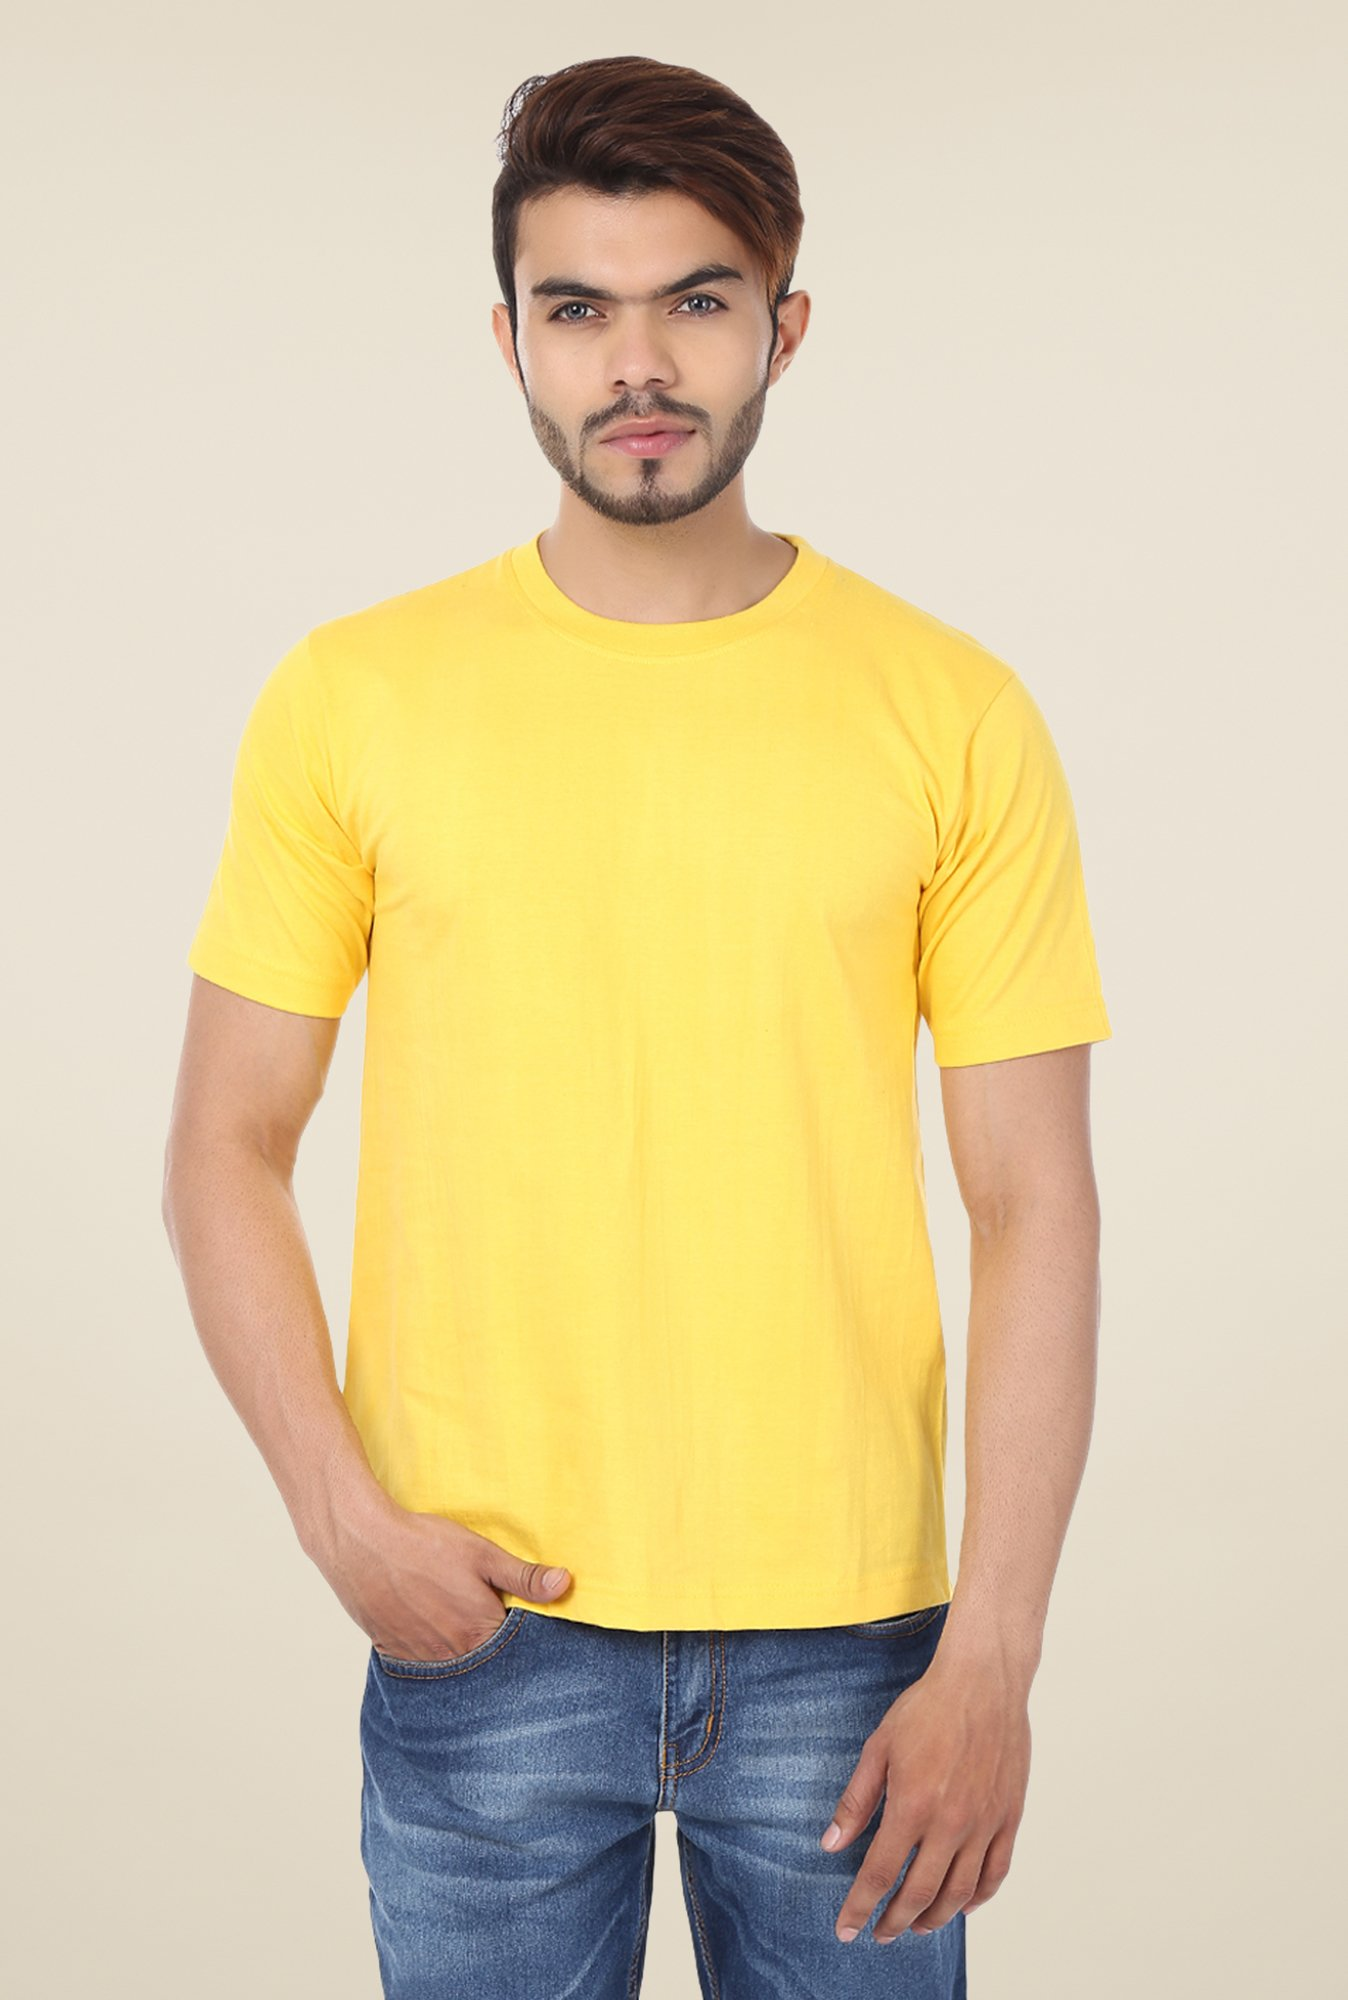 Weardo Yellow Crew Neck T-Shirt